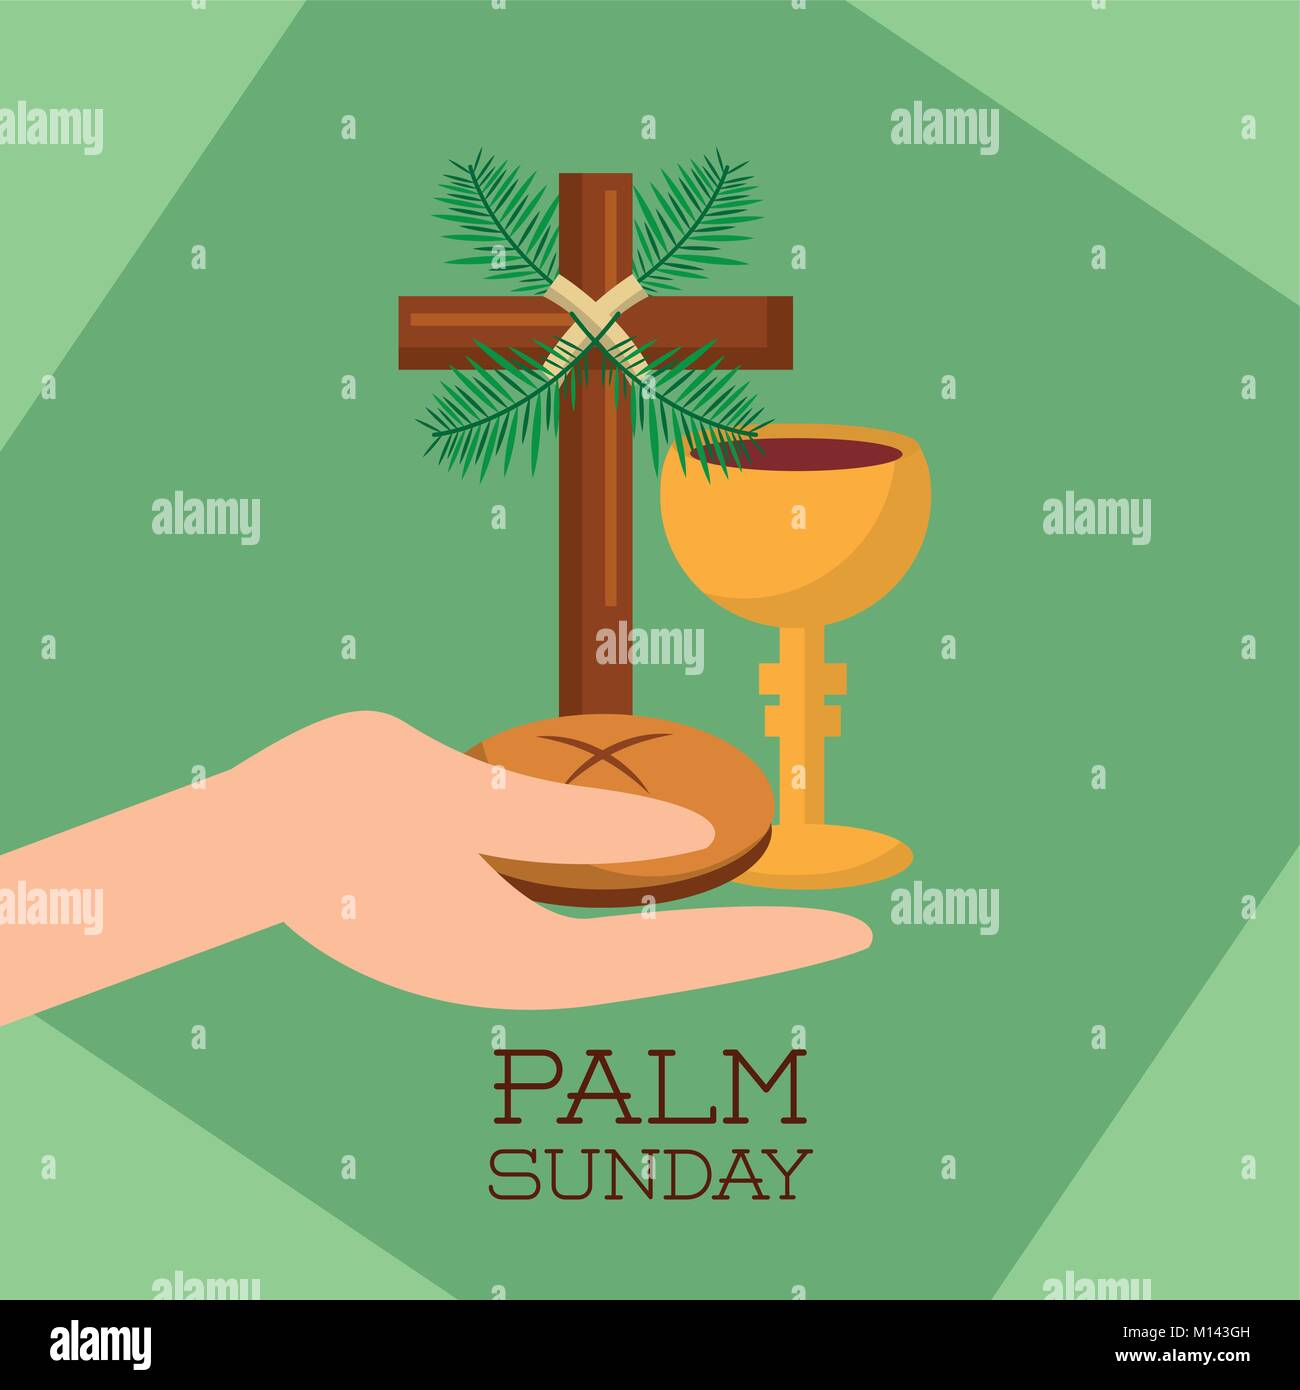 palm sunday hand holding bread cup jesus christ green background - Stock Vector